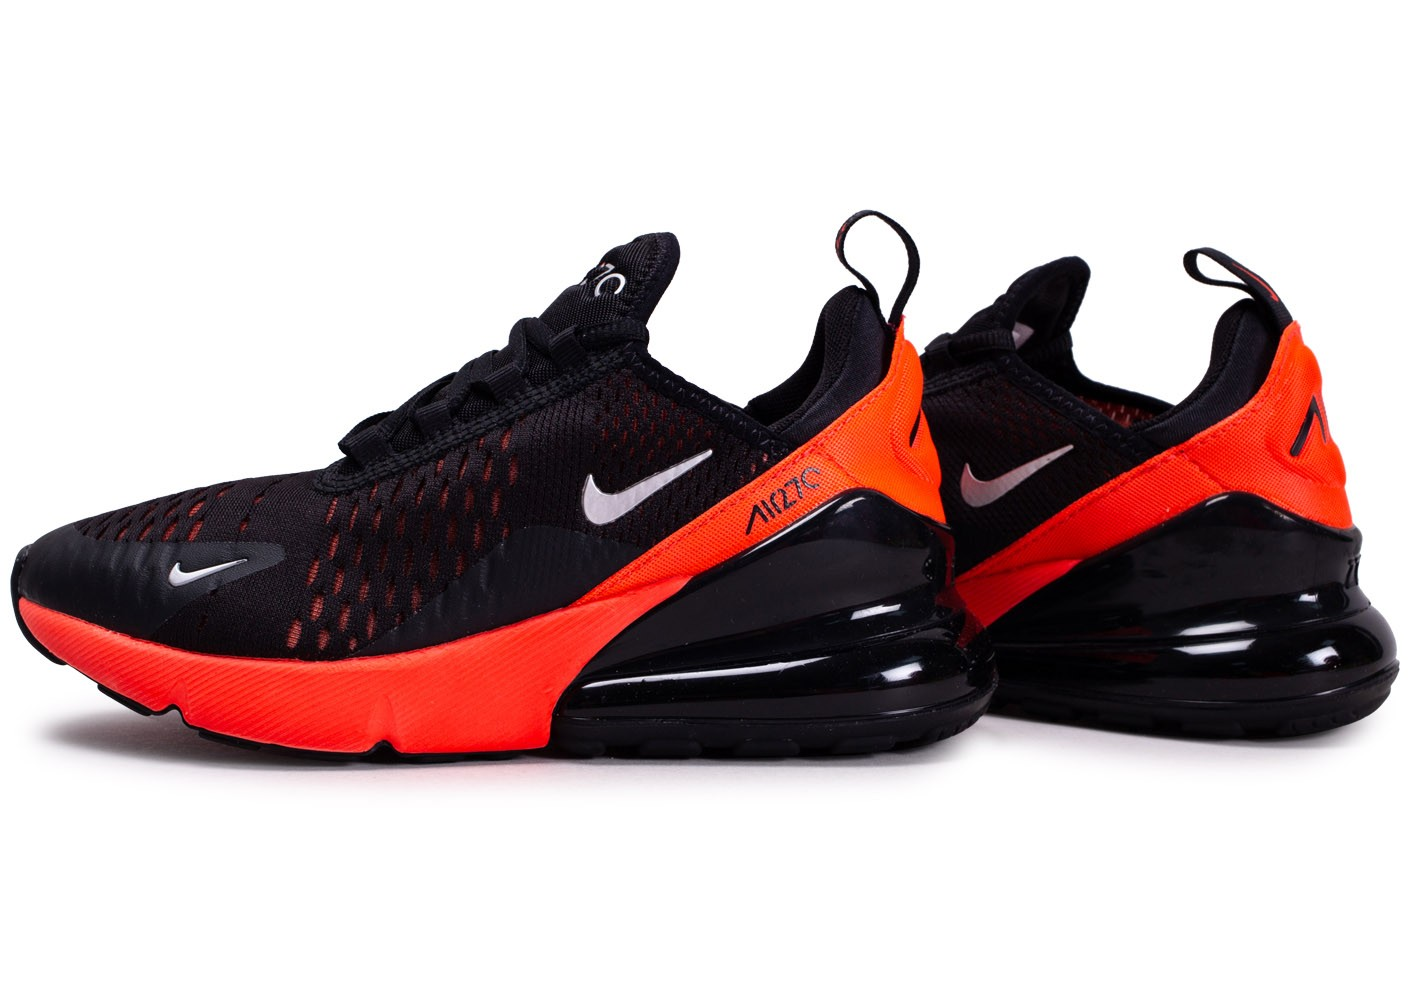 Nike Air Max 270 Noire Bright Crimson junior Chaussures